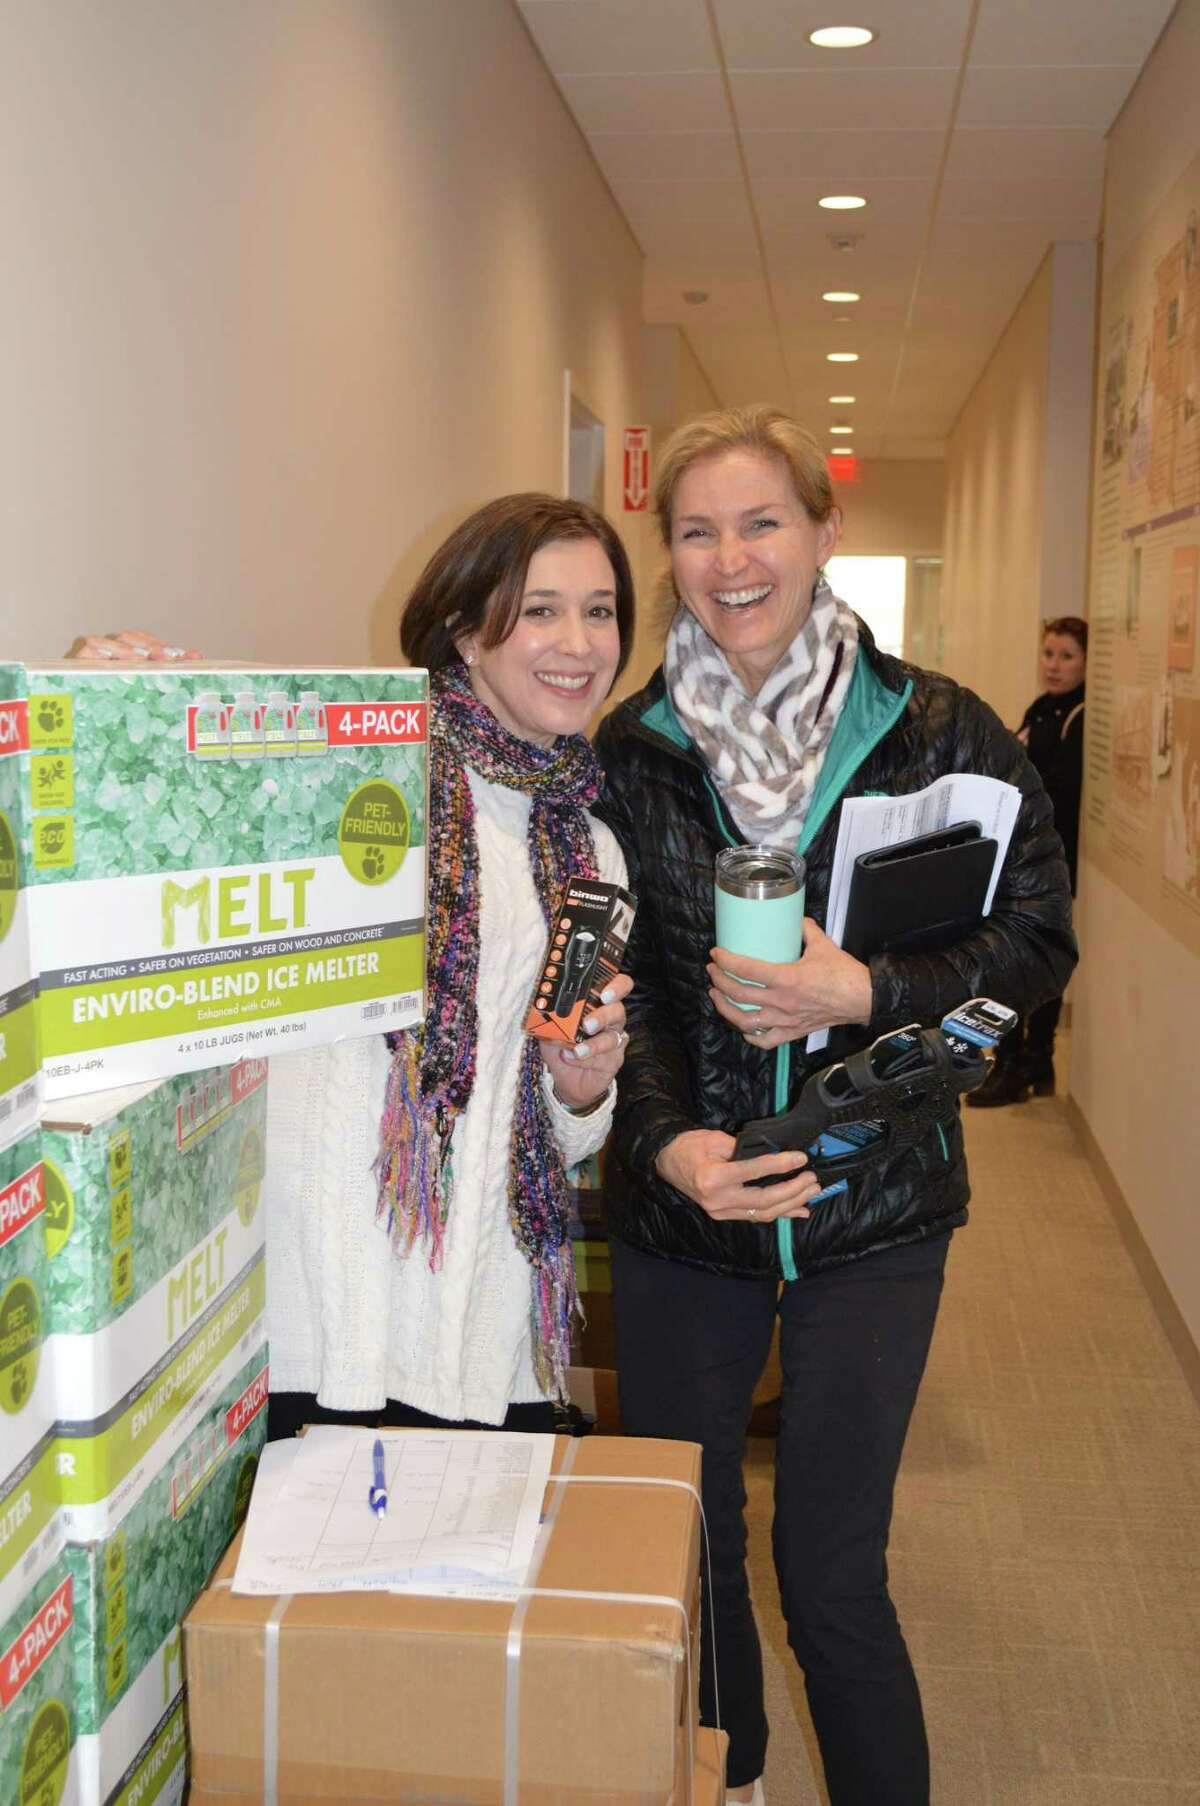 Physical therapists Kris Greco and Tricia Brody grab some ice melt for the road.